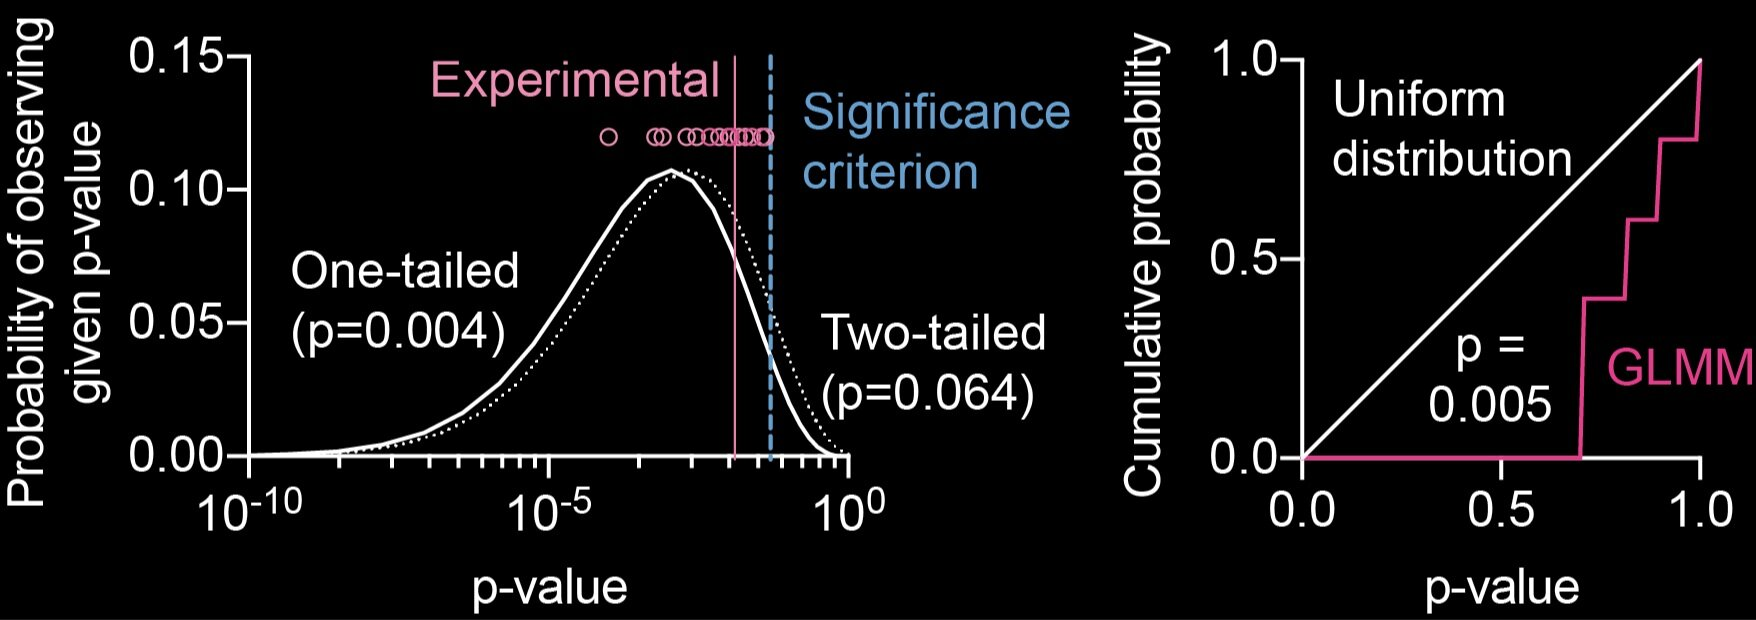 Figure 1 from    Thornquist and Crickmore Science 2019  . The plot on the left shows the expected distributions of p-values for hypothesis-confirming experiments in white, compared to the actual p-values of Danchin et al. in pink. The pink values are much closer to 0.05 (blue dashed line) than you would expect, which could indicate that just-good-enough trials were selected for. The panel on the right shows the expected distribution of p-values when comparing effects across experiments (e.g. the green bars in their Figure 5). Here you would expect a uniform distribution of p-values, since you are effectively drawing from the same population. Instead, the actual values in pink are highly skewed toward 1, indicative of extreme consistency across experiments and pointing to some factor other than the female simply choosing pink vs. green males.